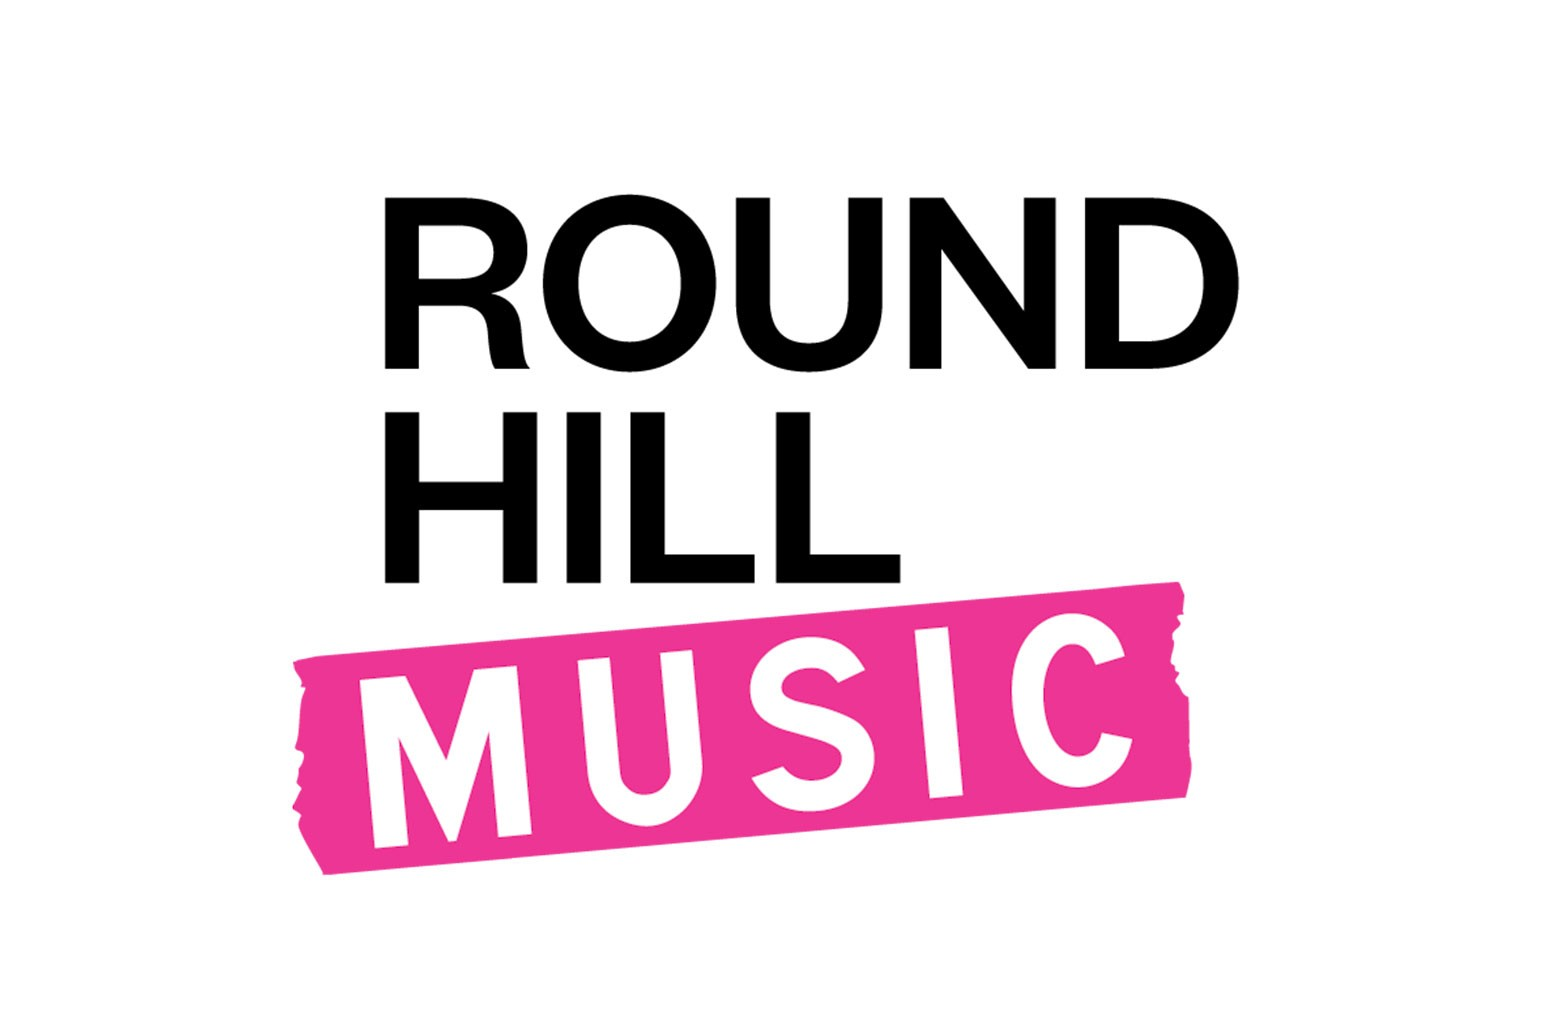 Round Hill Music co-founder Richard Rowe exits company after 10 years – Music Business Worldwide